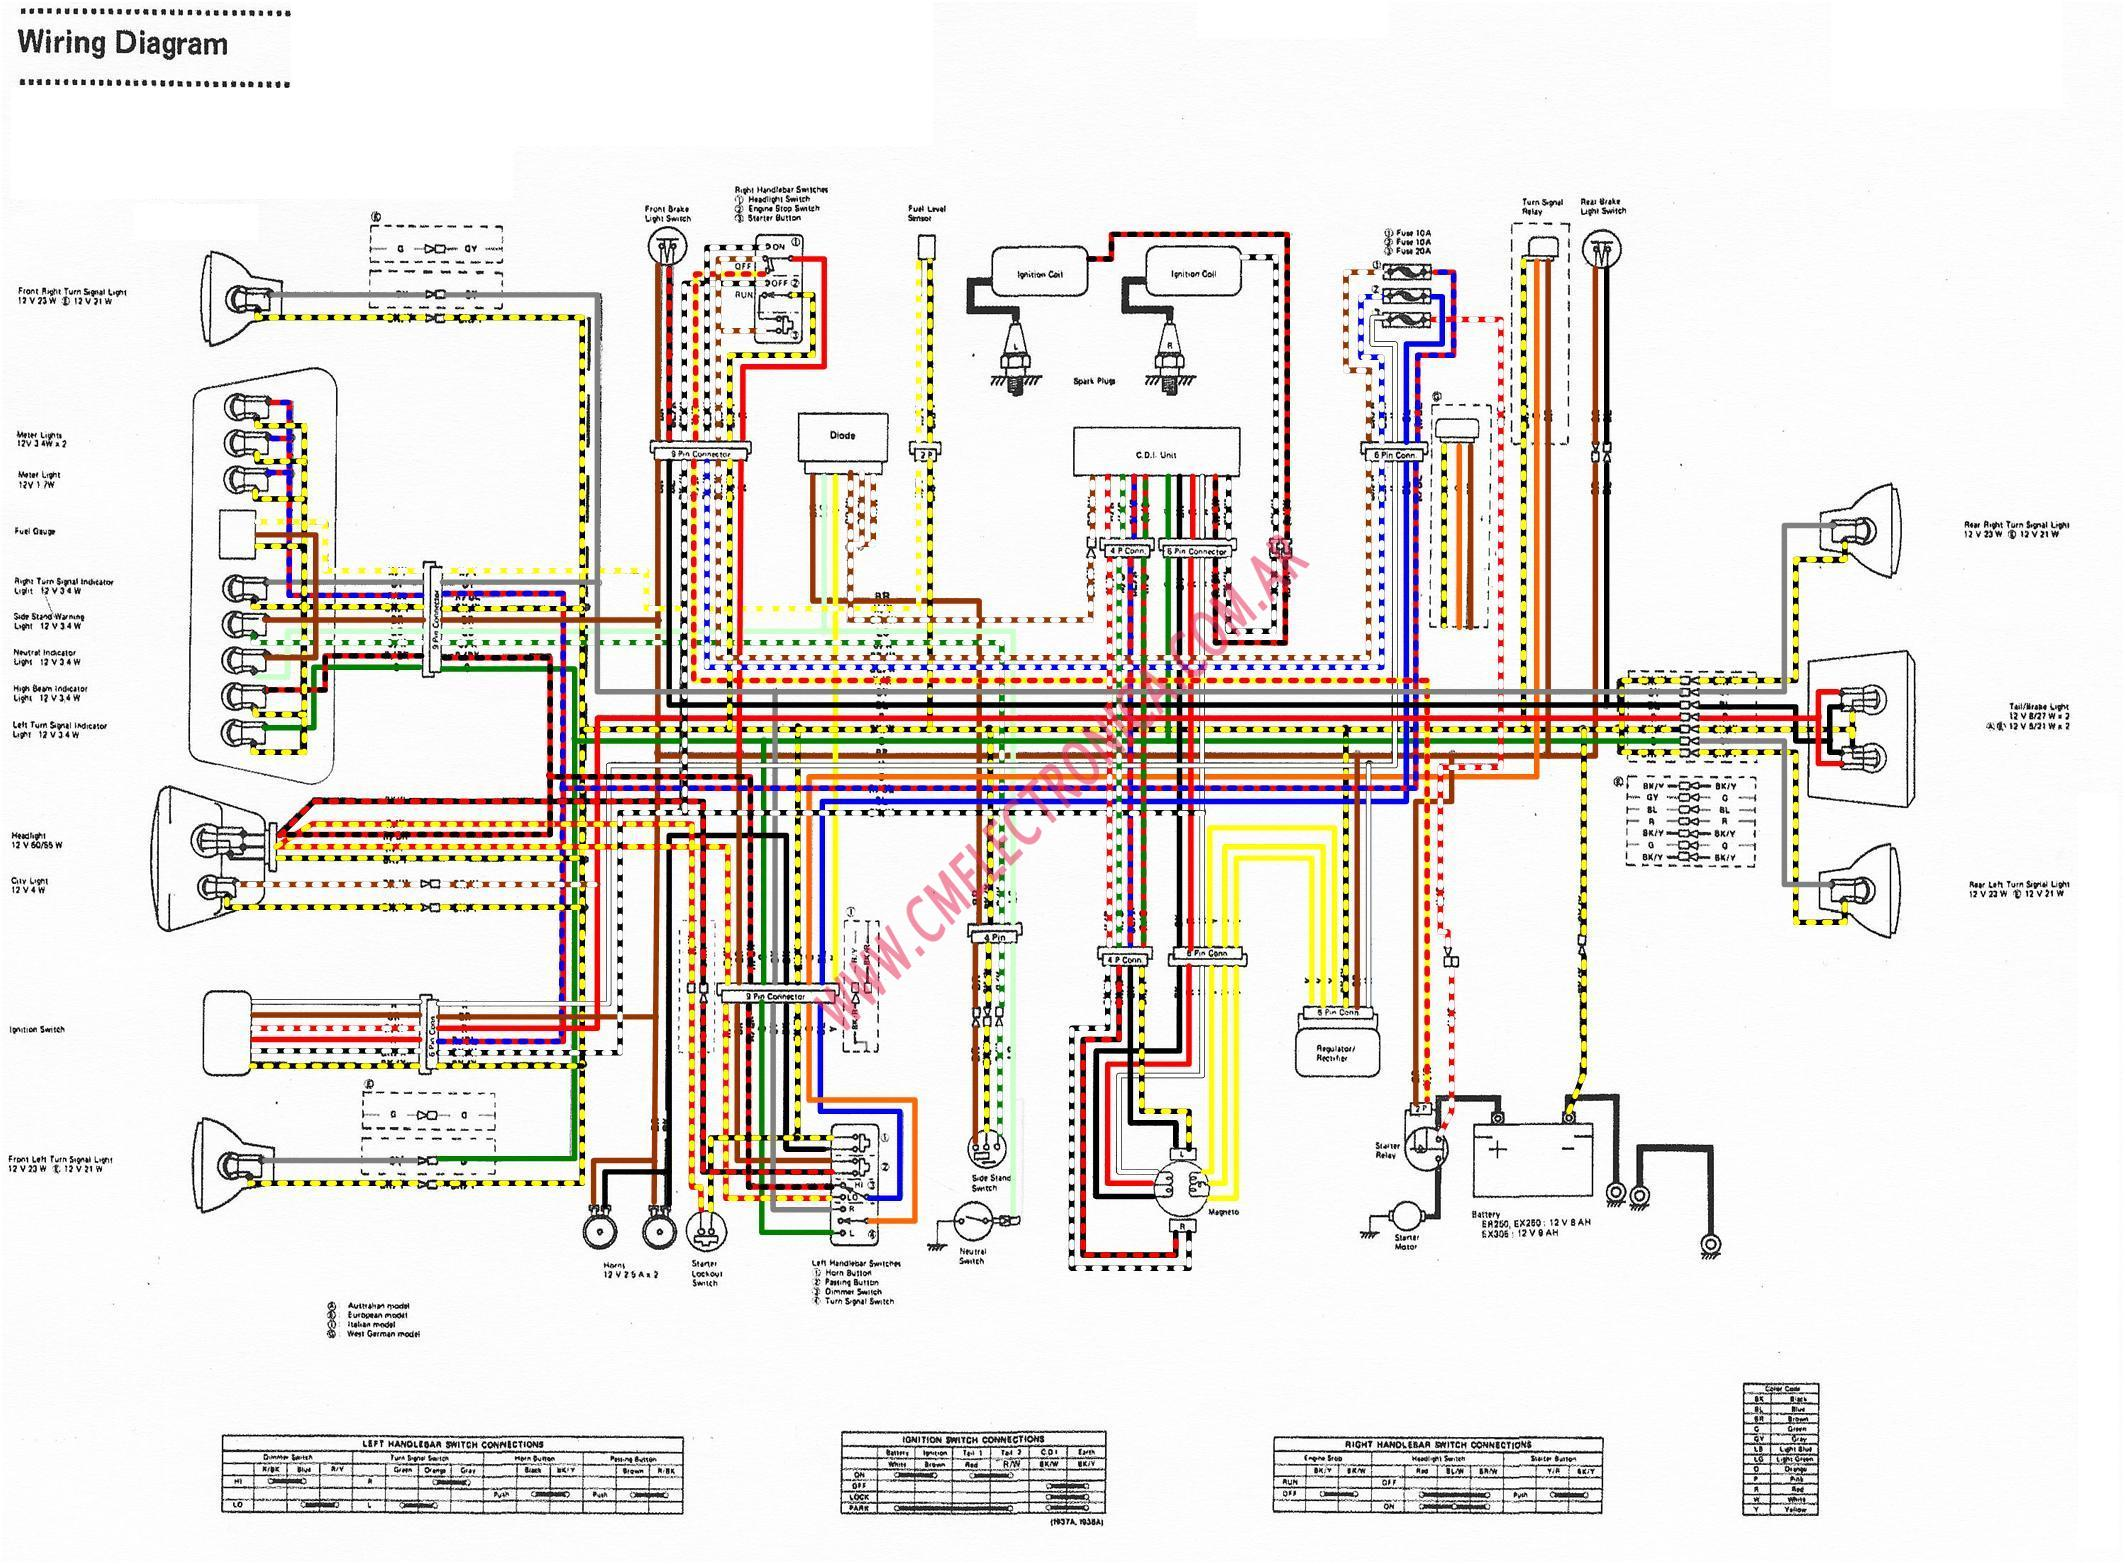 Wiring Diagram Ninja Rr : Kawasaki ninja ignition wiring diagram ktm